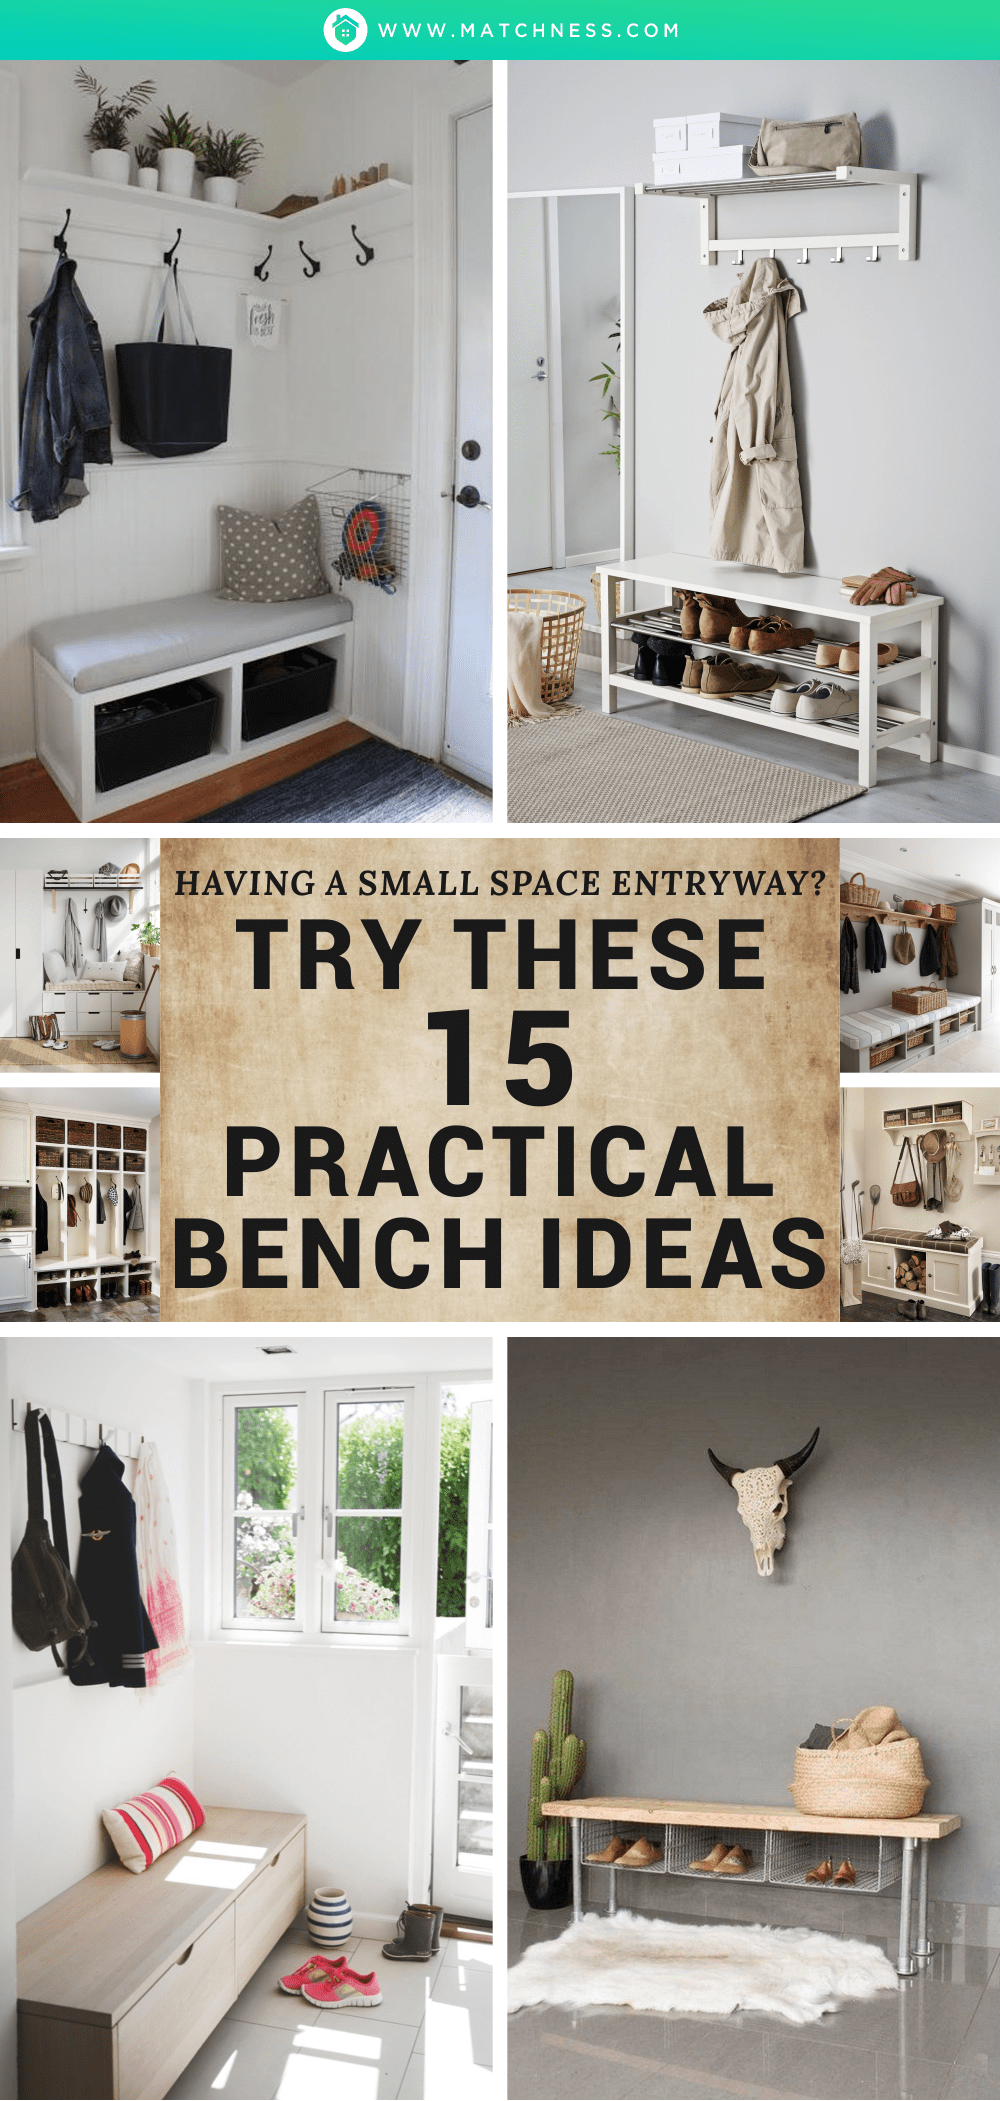 Having-a-small-space-entryway-try-these-15-practical-bench-ideas1